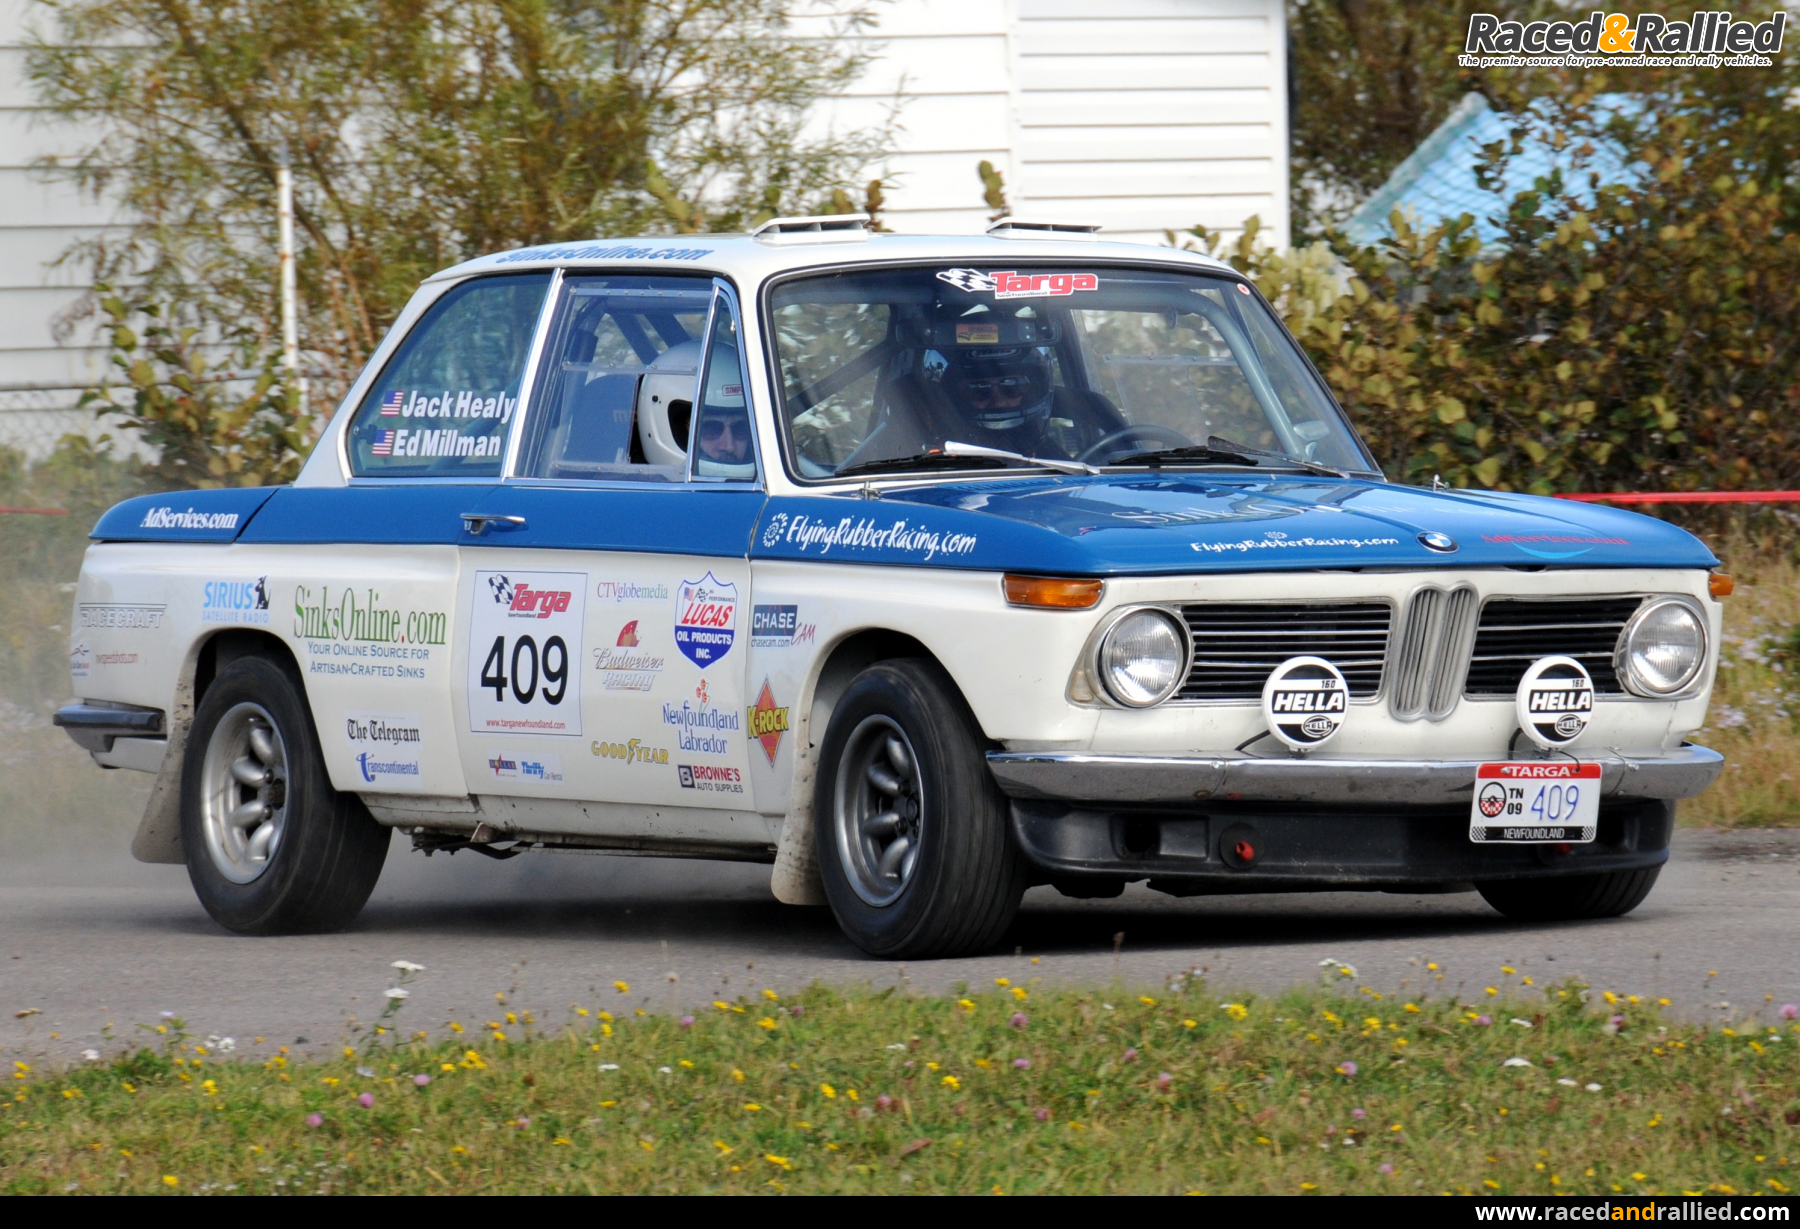 Bmw 2002 Sale >> 1969 BMW 2002 Rally Car | Rally Cars for sale at Raced & Rallied | rally cars for sale, race ...